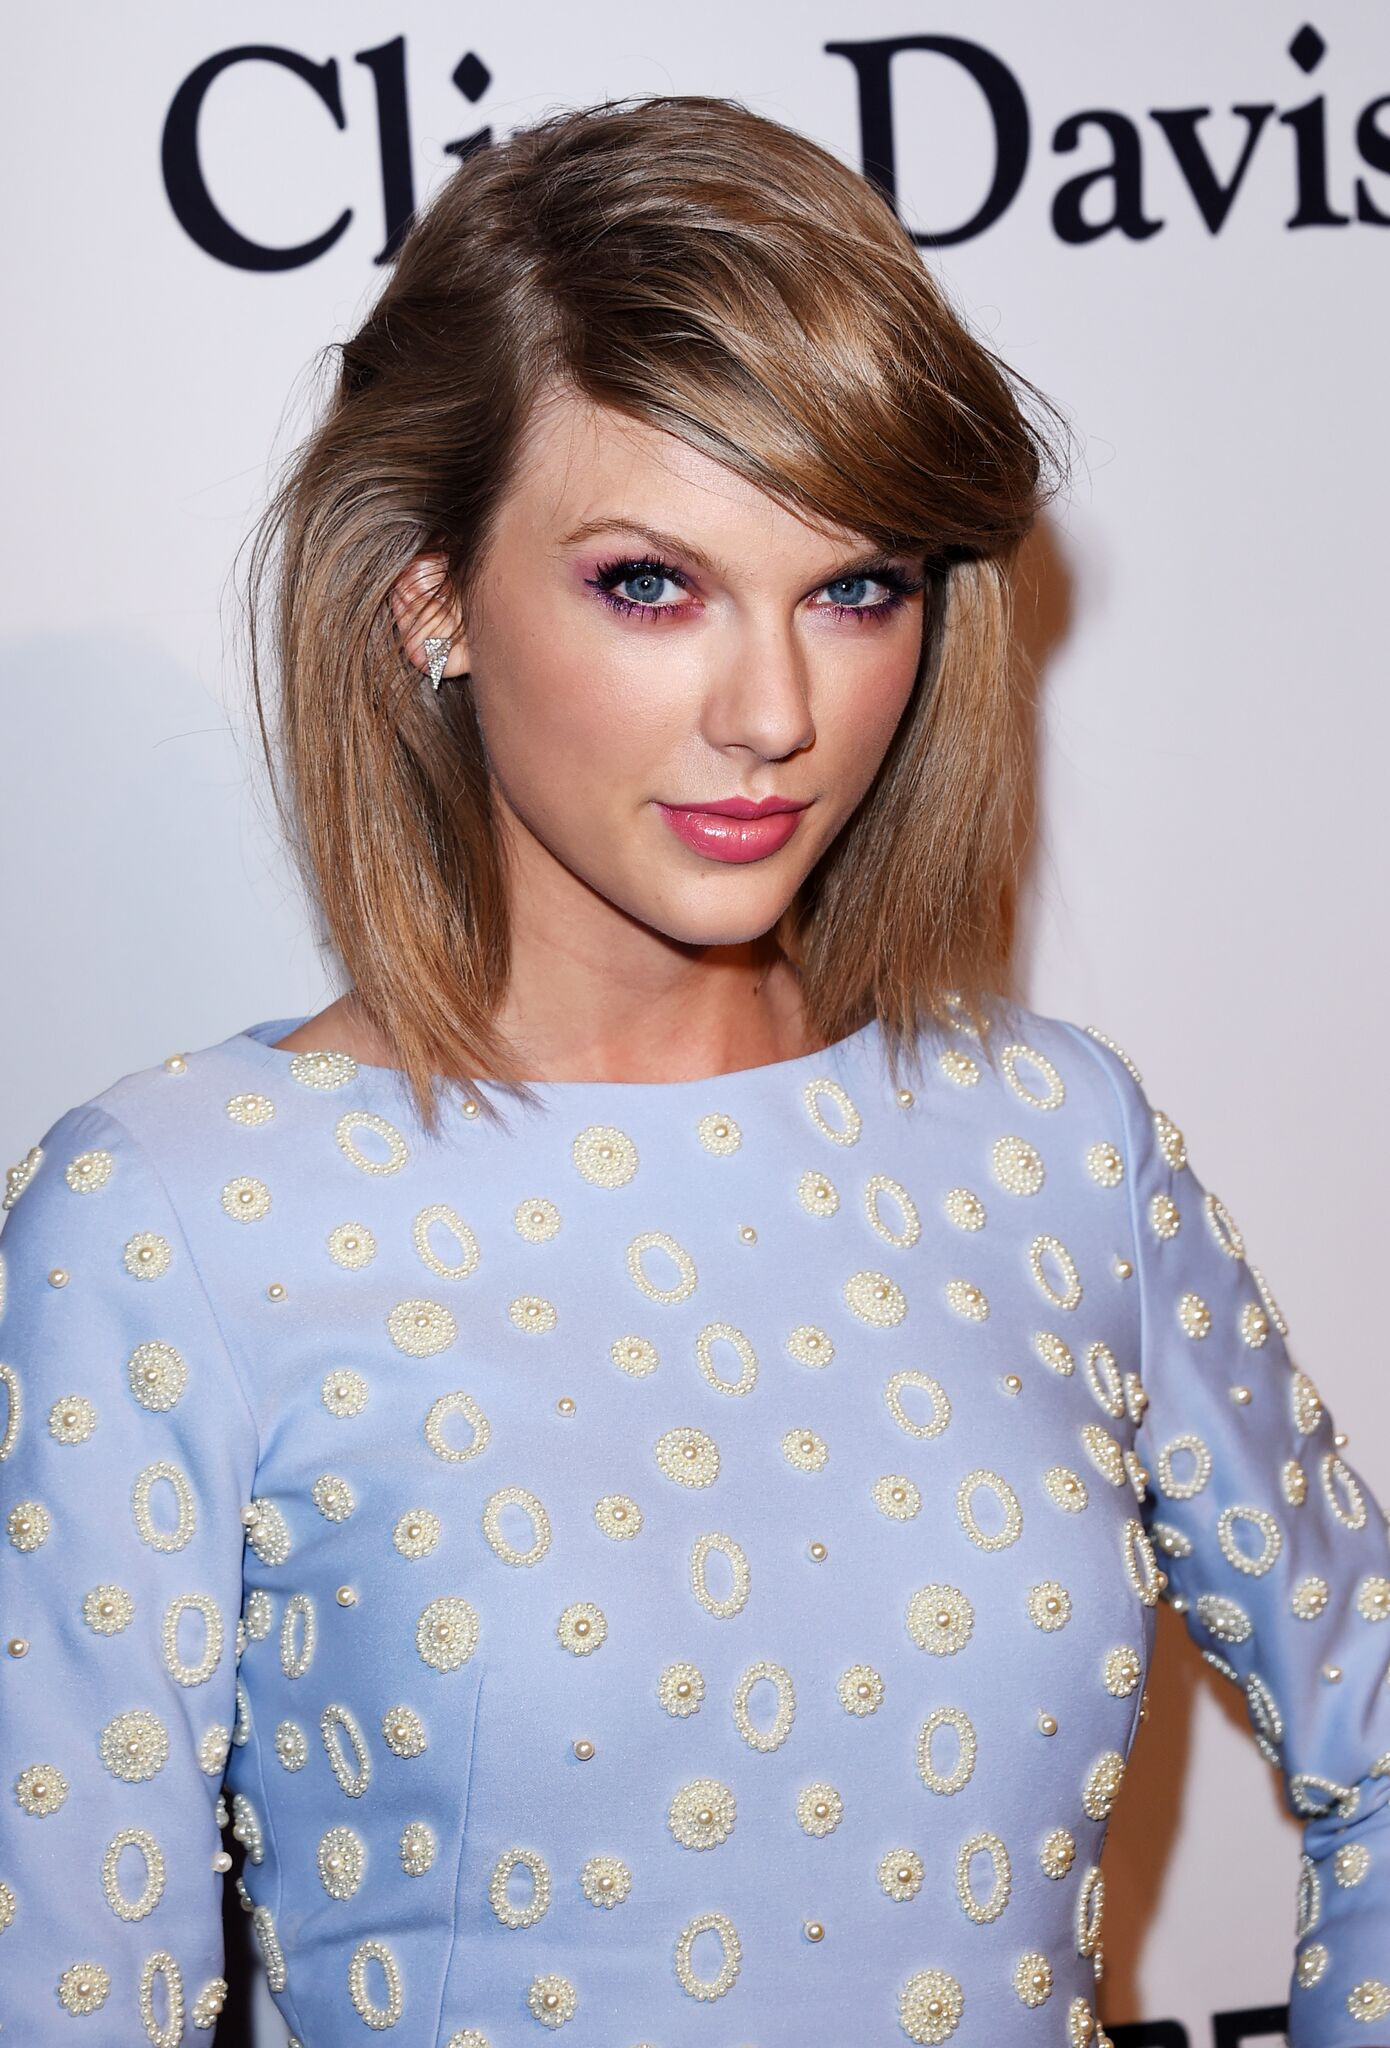 Image Credit: Getty Images / Singer Taylor Swift poses for a photo on the red carpet.